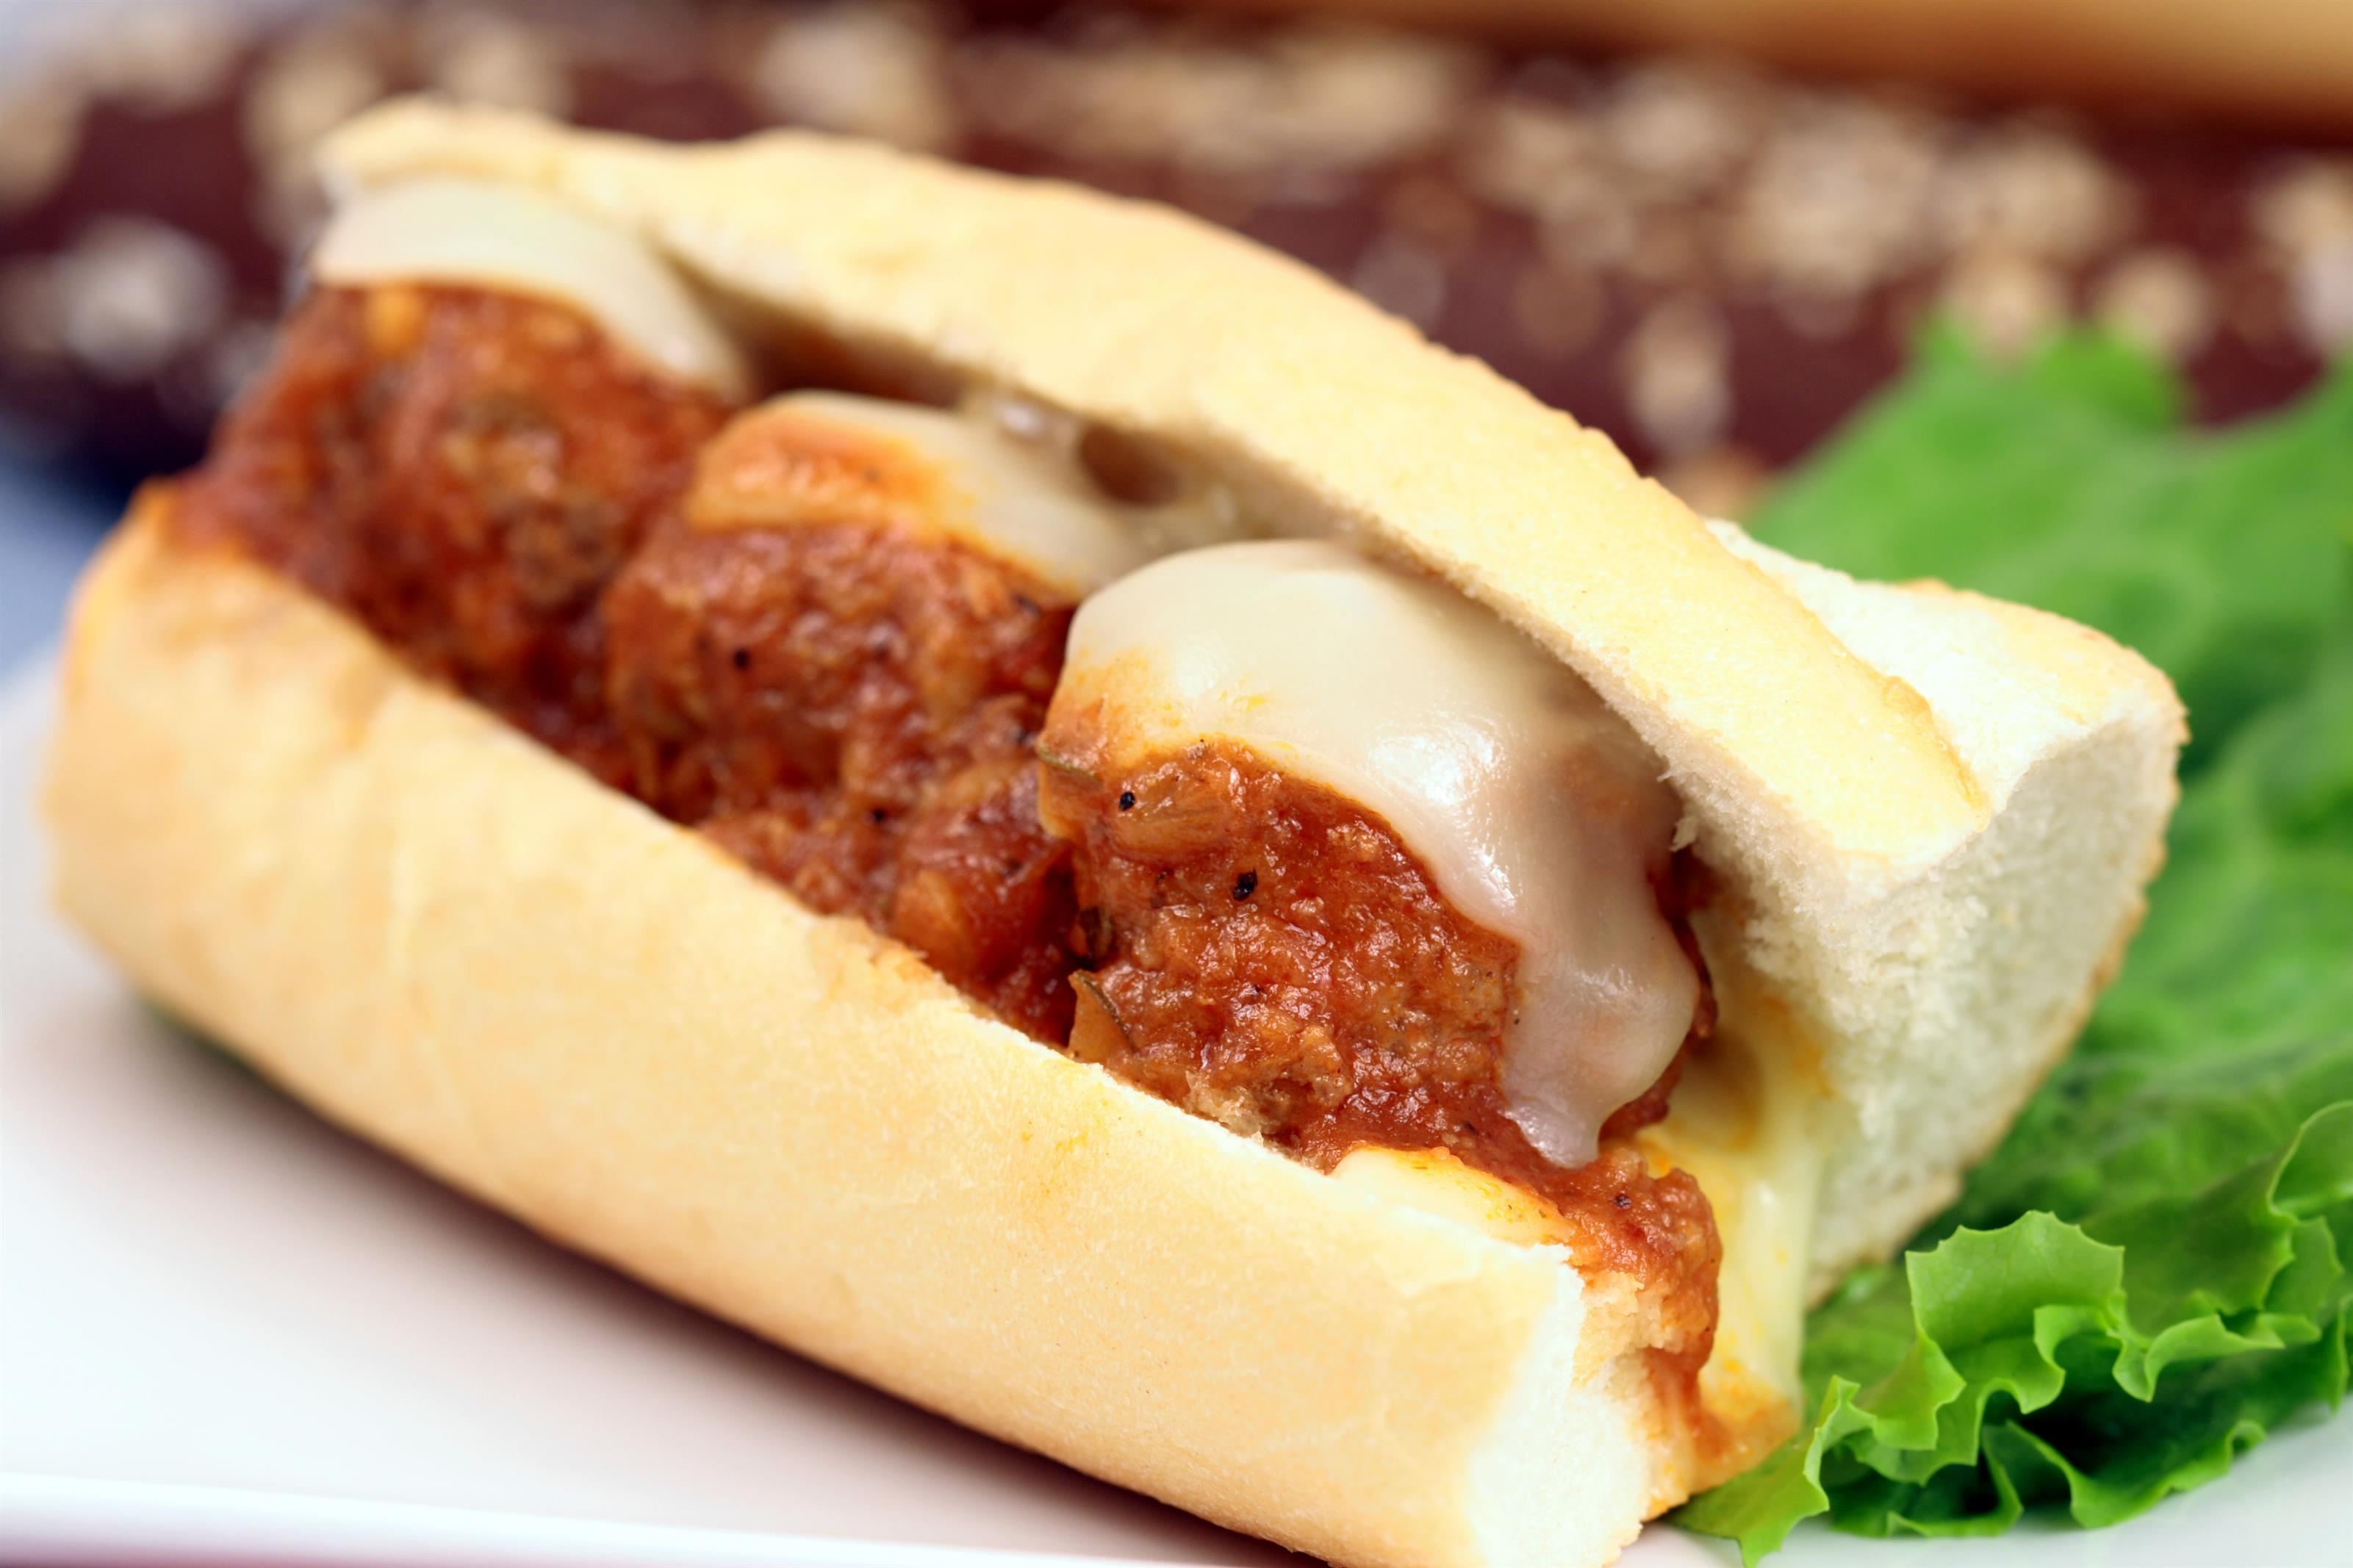 Meatball hero on a plate